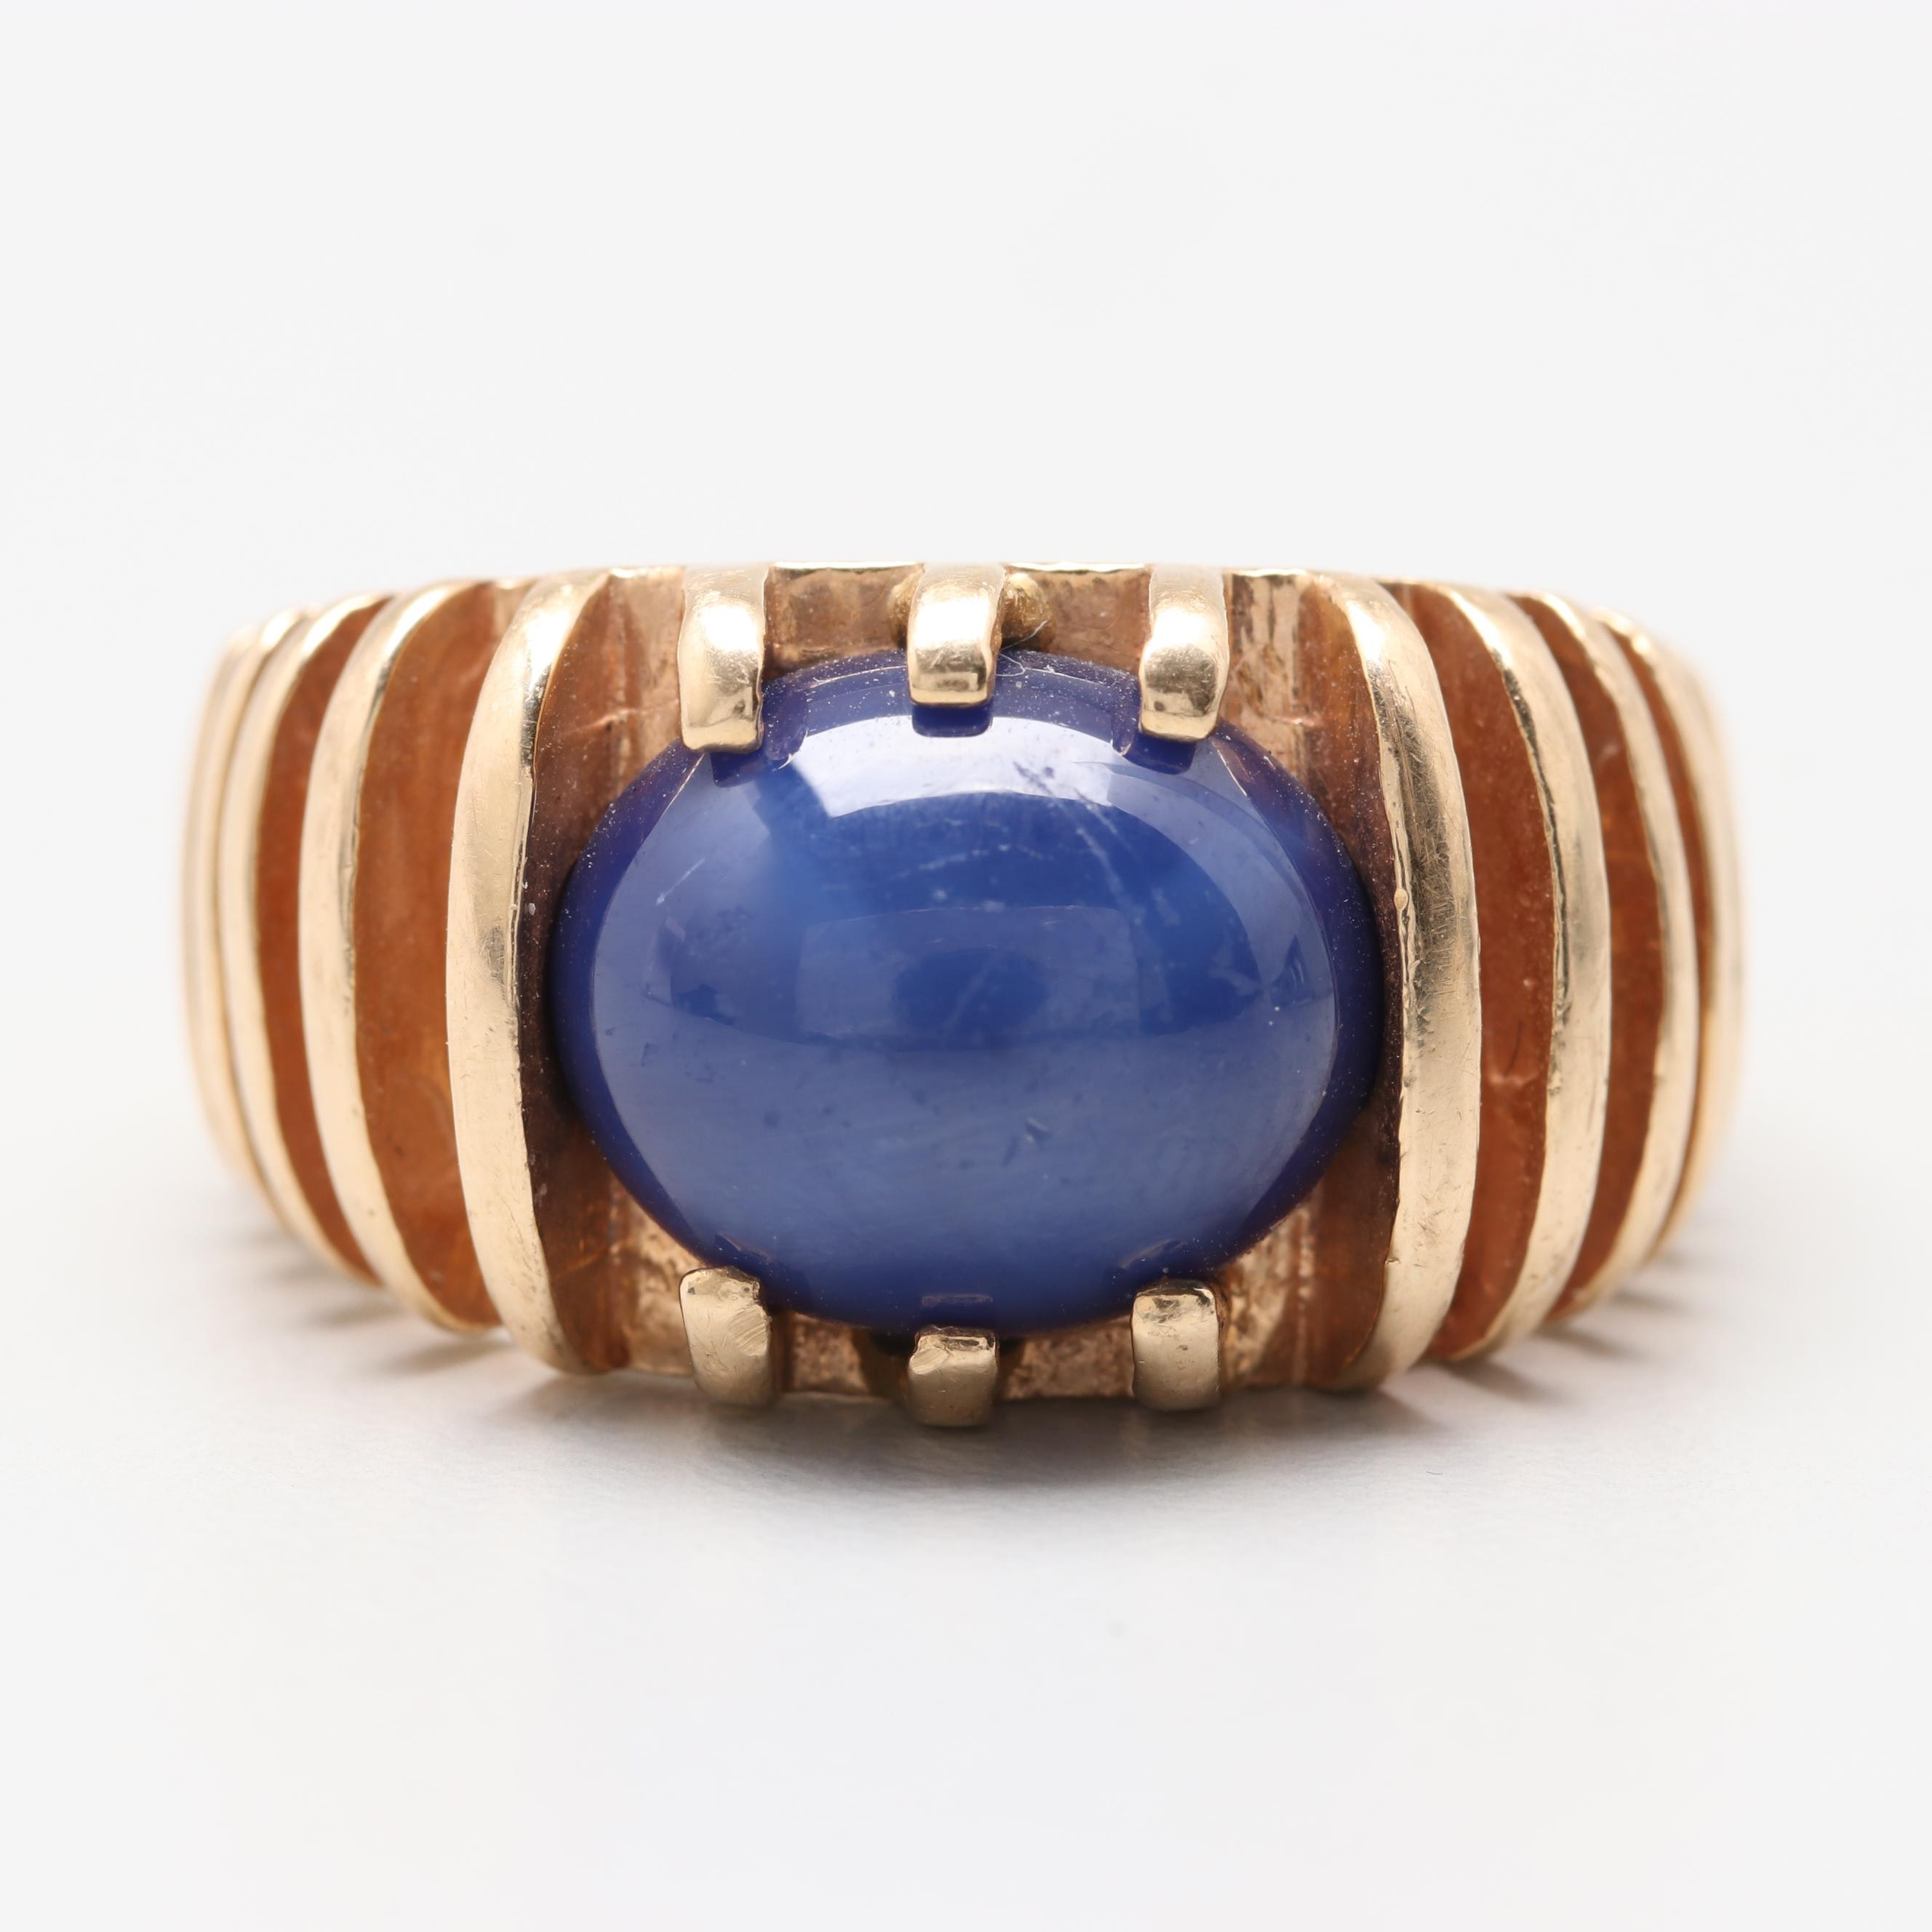 Circa 1970s 14K Yellow Gold Synthetic Blue Sapphire Ring